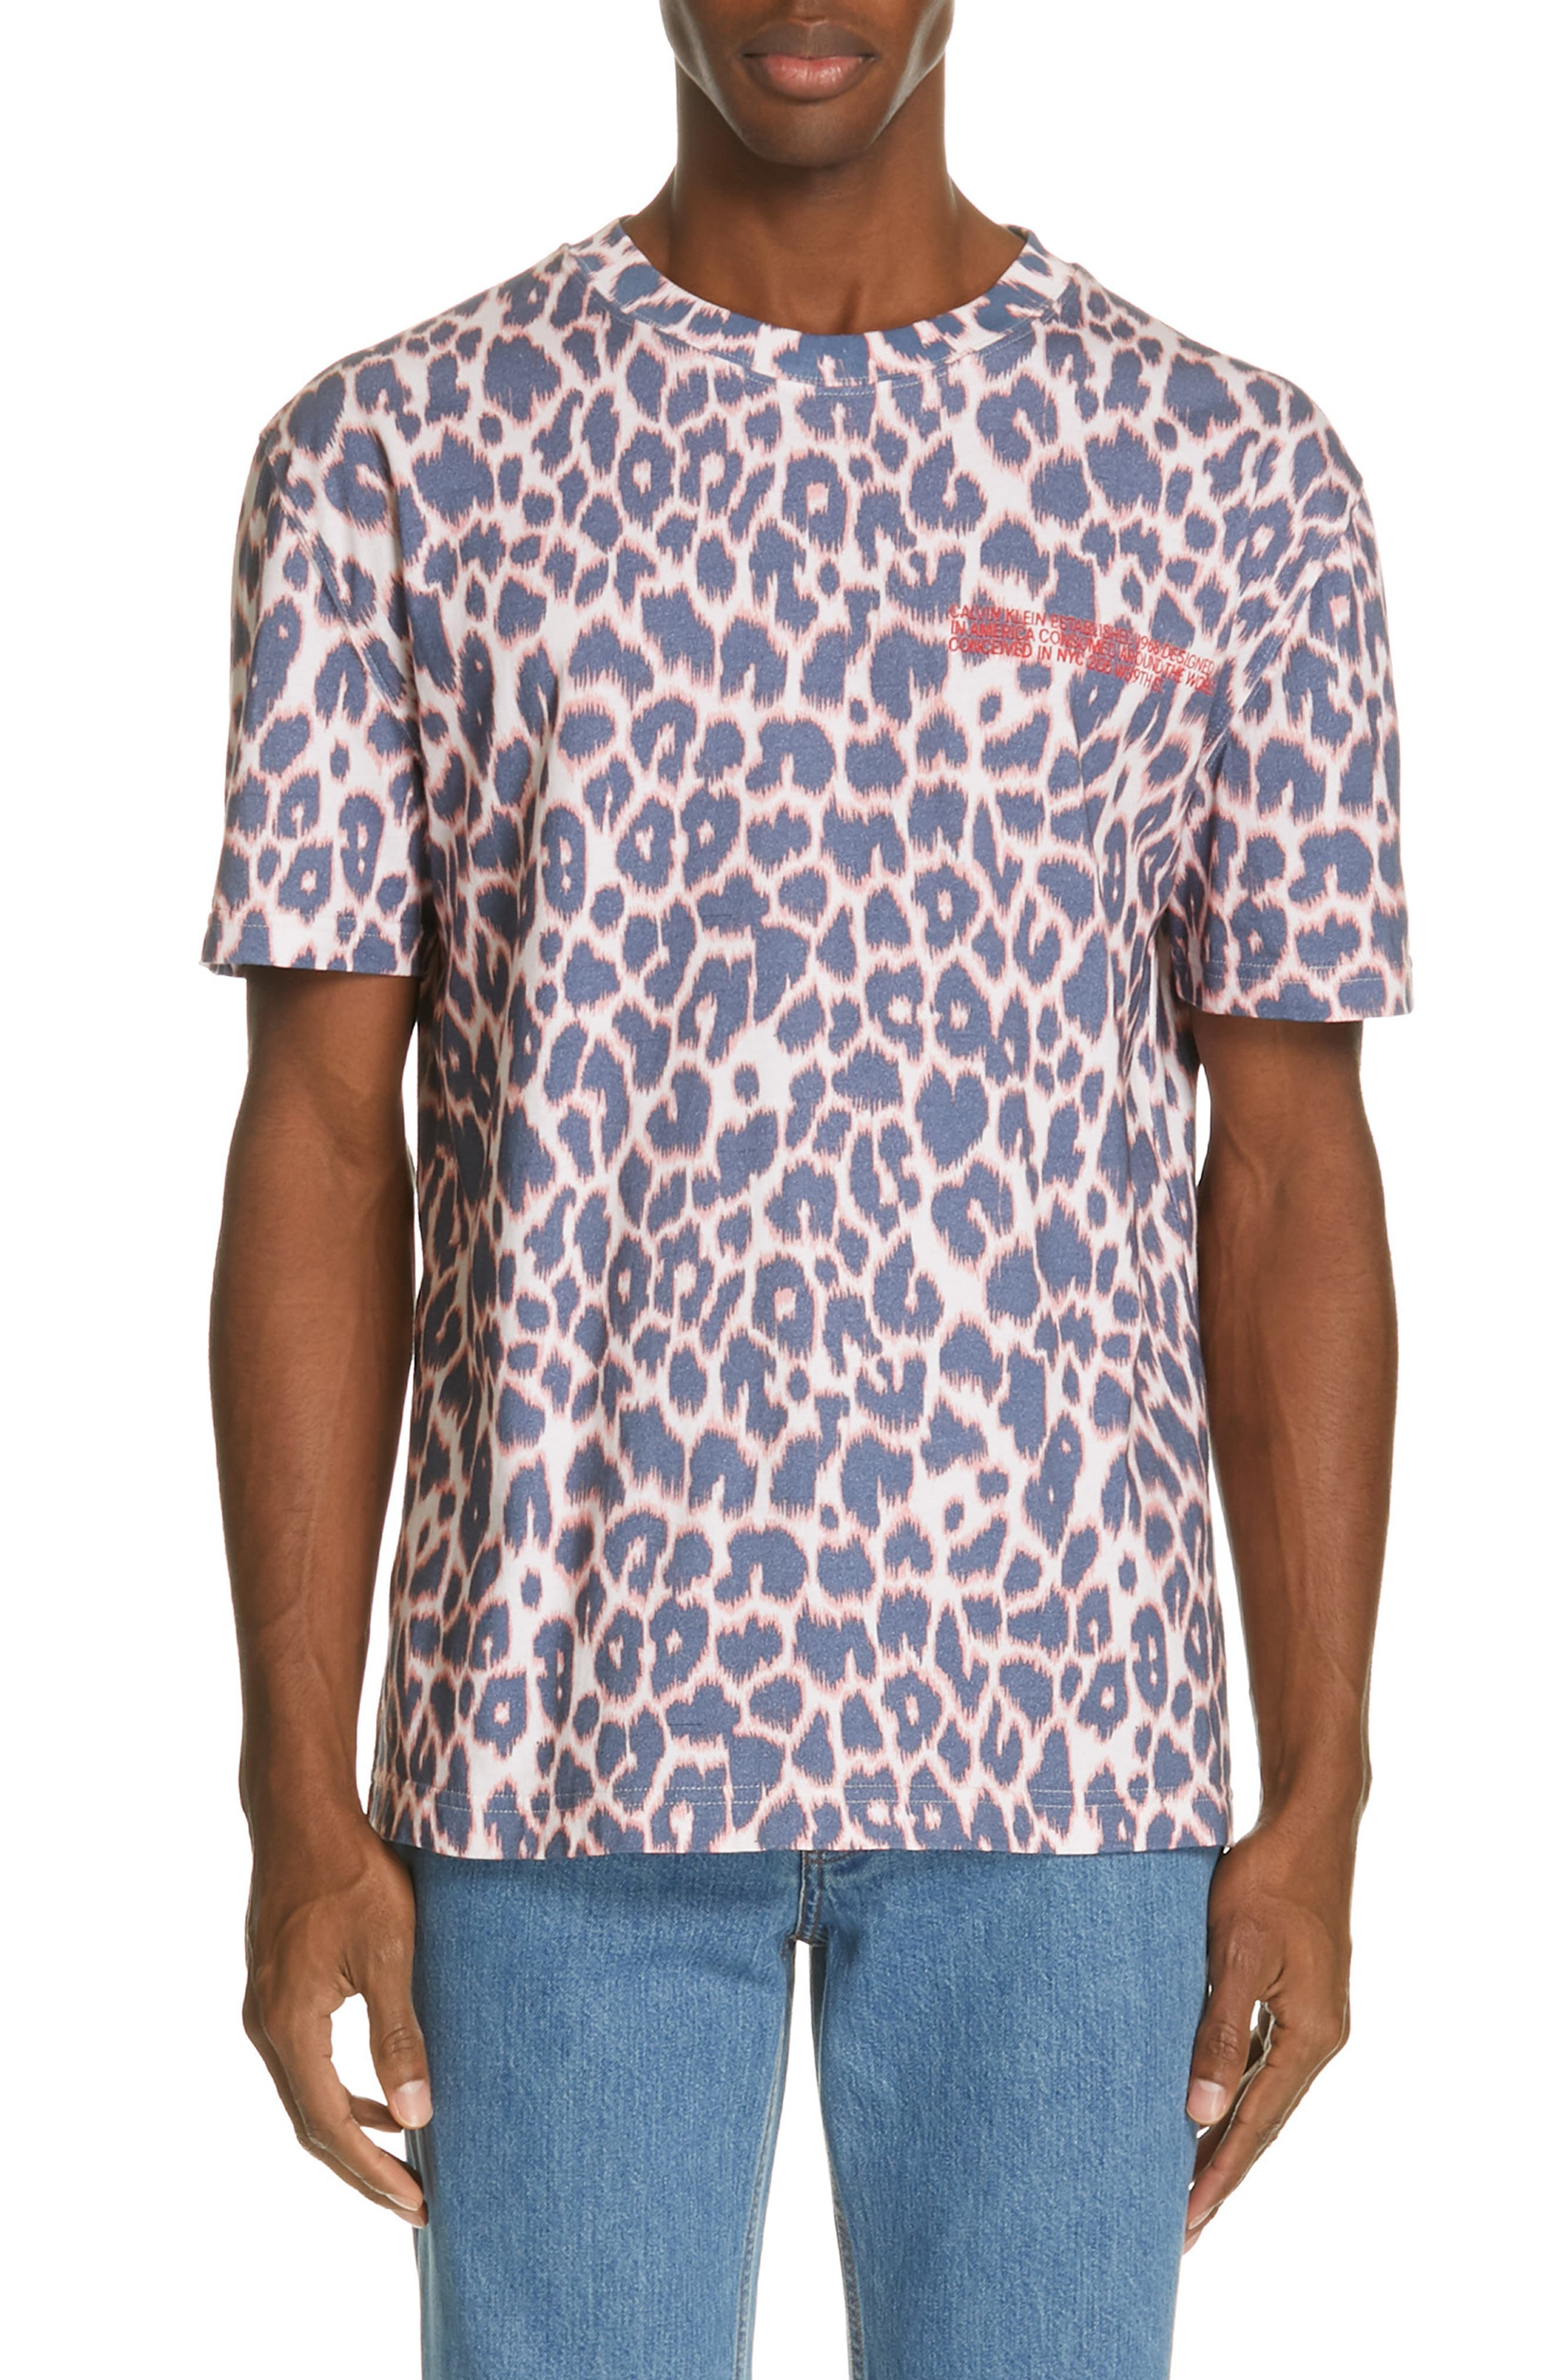 CALVIN KLEIN 205W39NYC Electric Panther Print T-Shirt, Main, color, ELECTRIC PANTHERE